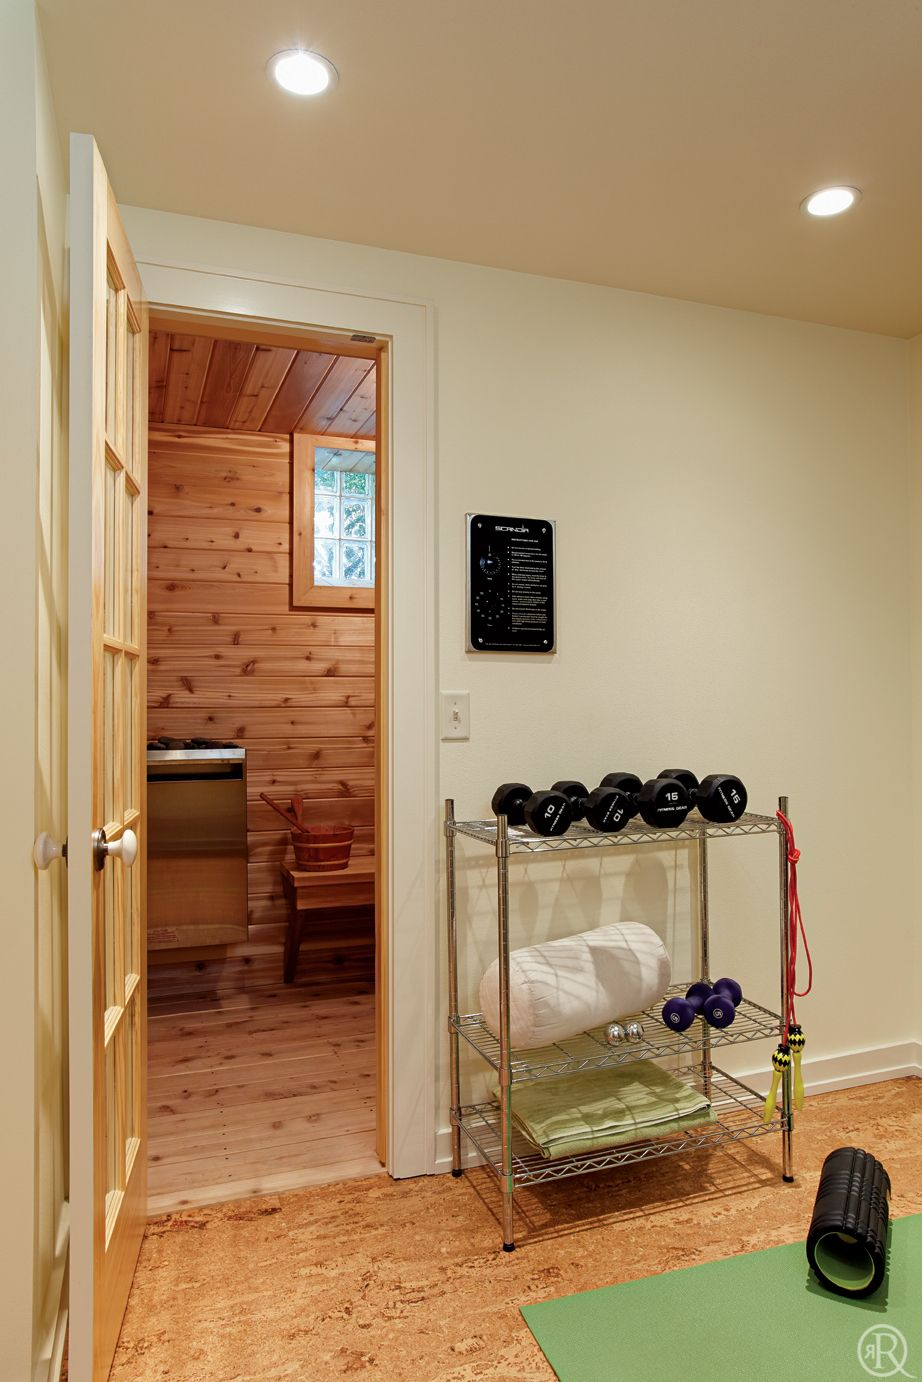 Best Of How to Build A Sauna In Basement